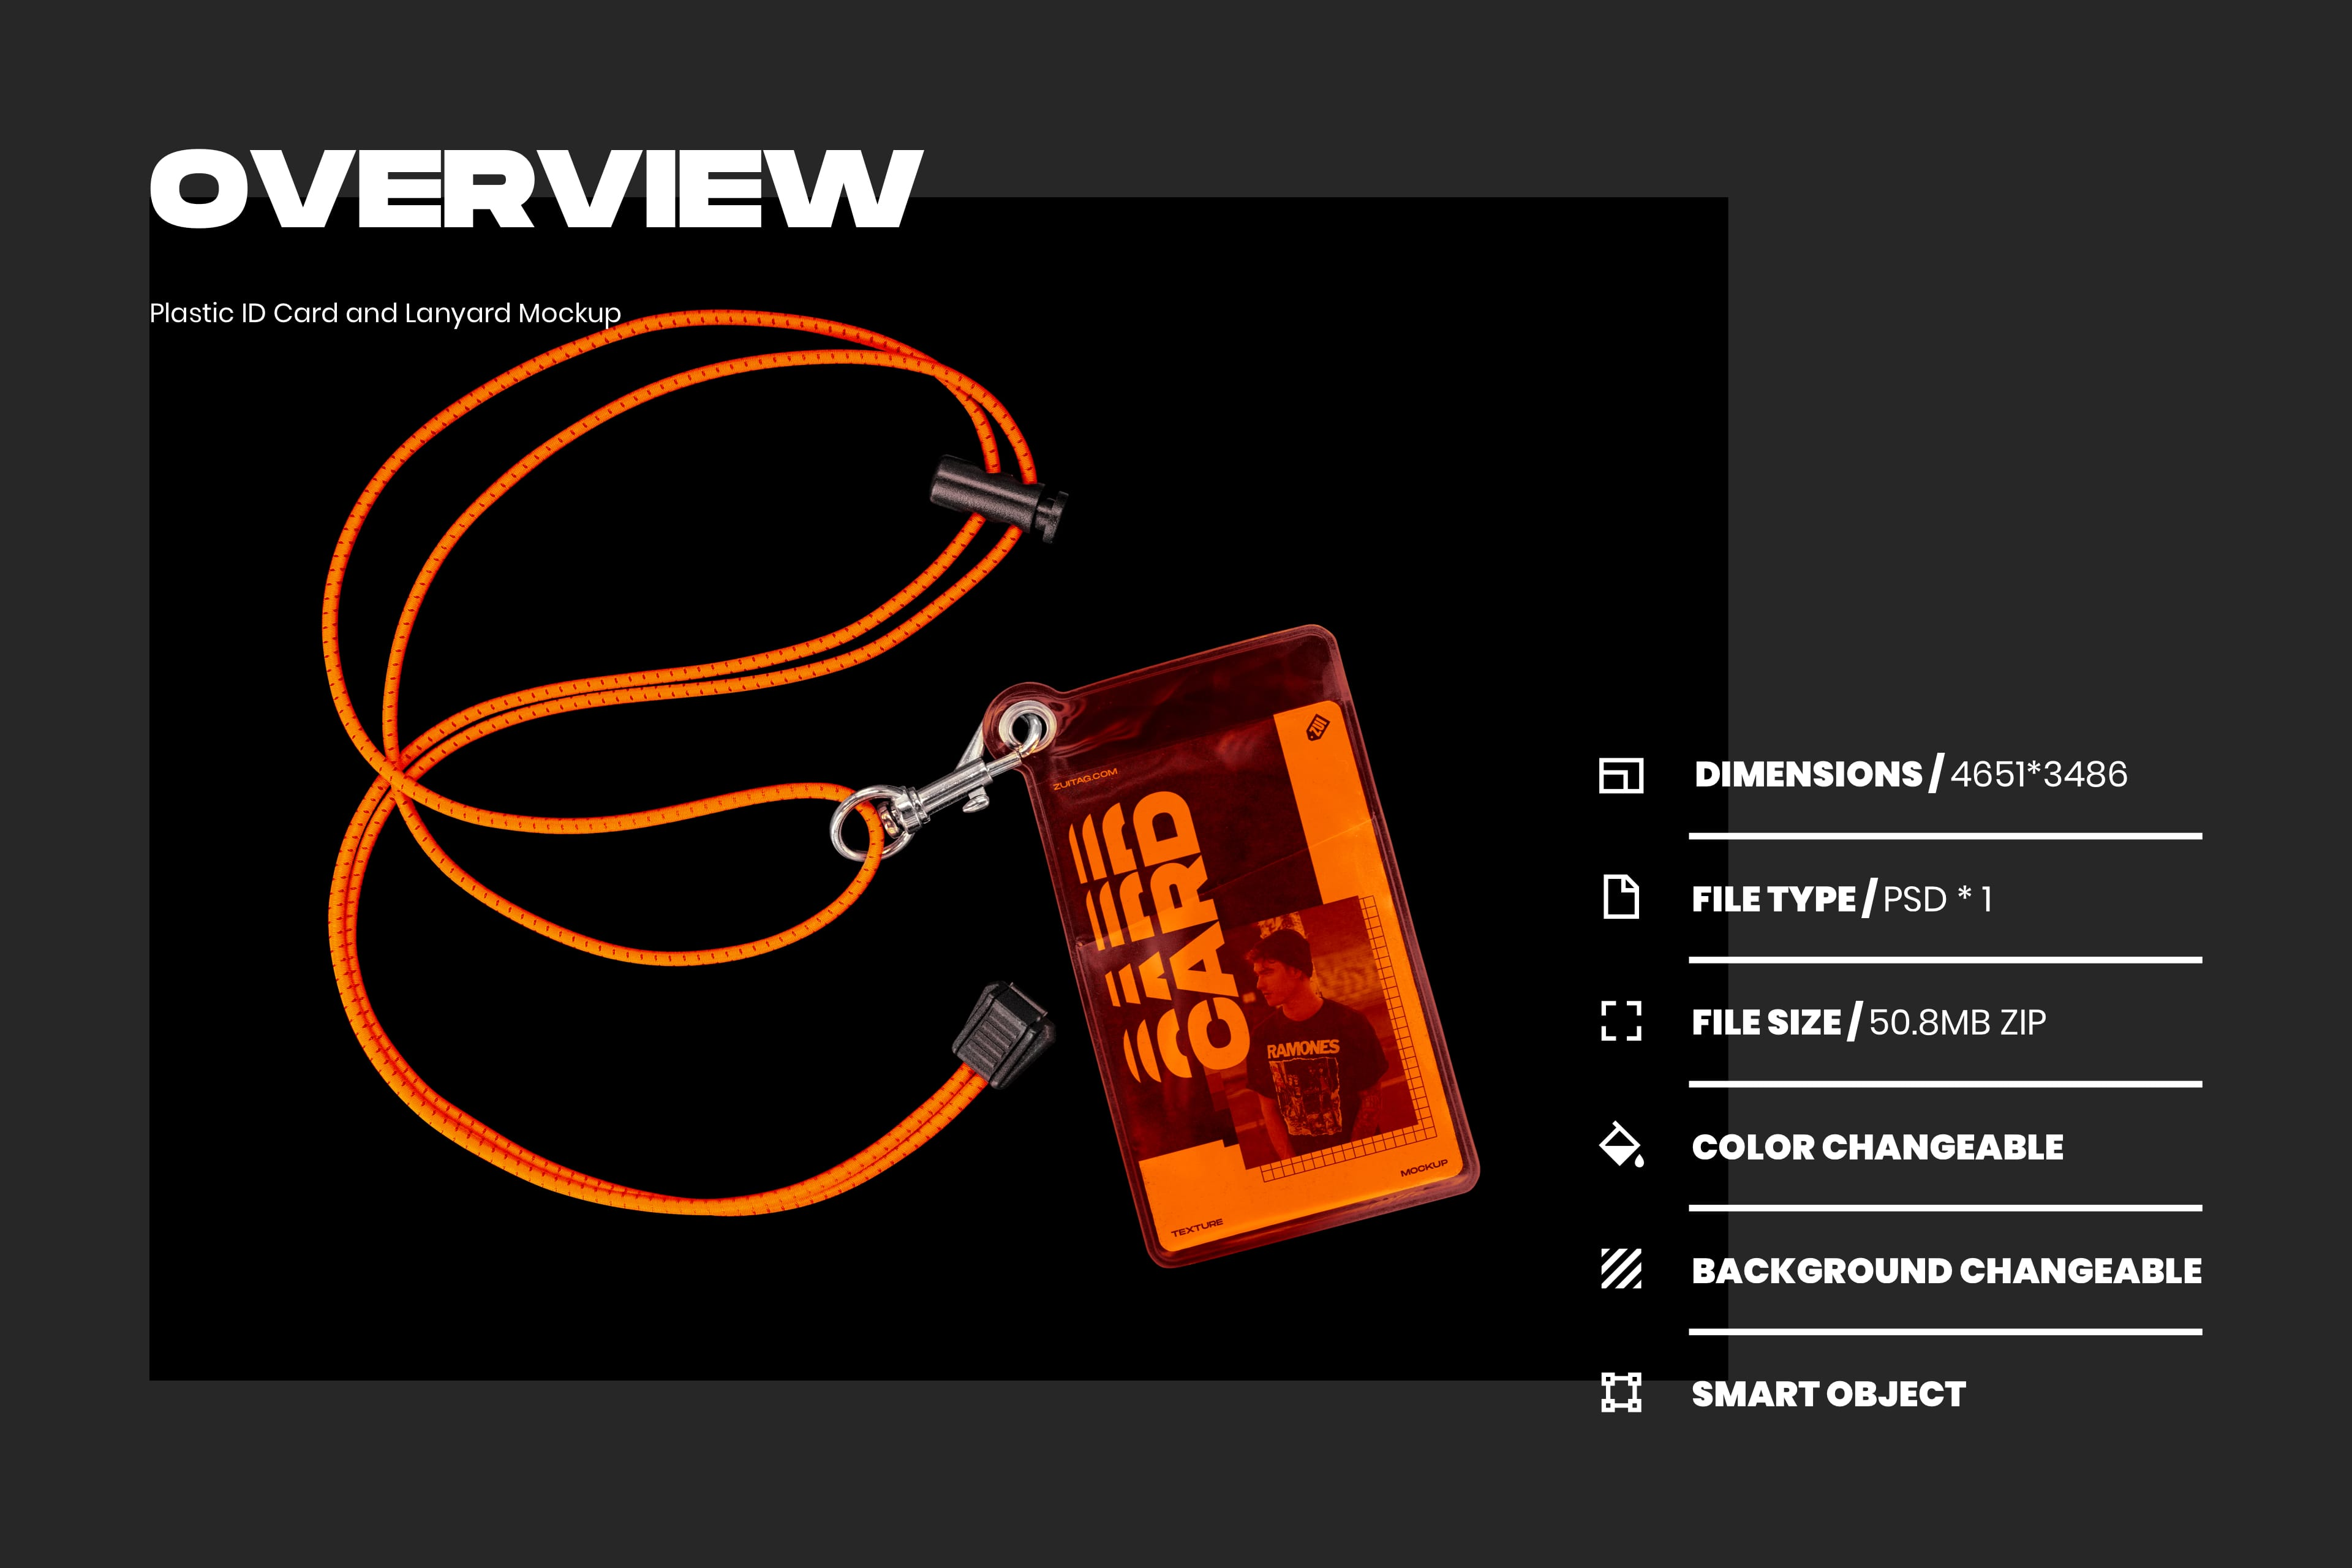 Plastic ID Card and Lanyard Mockup - Overview